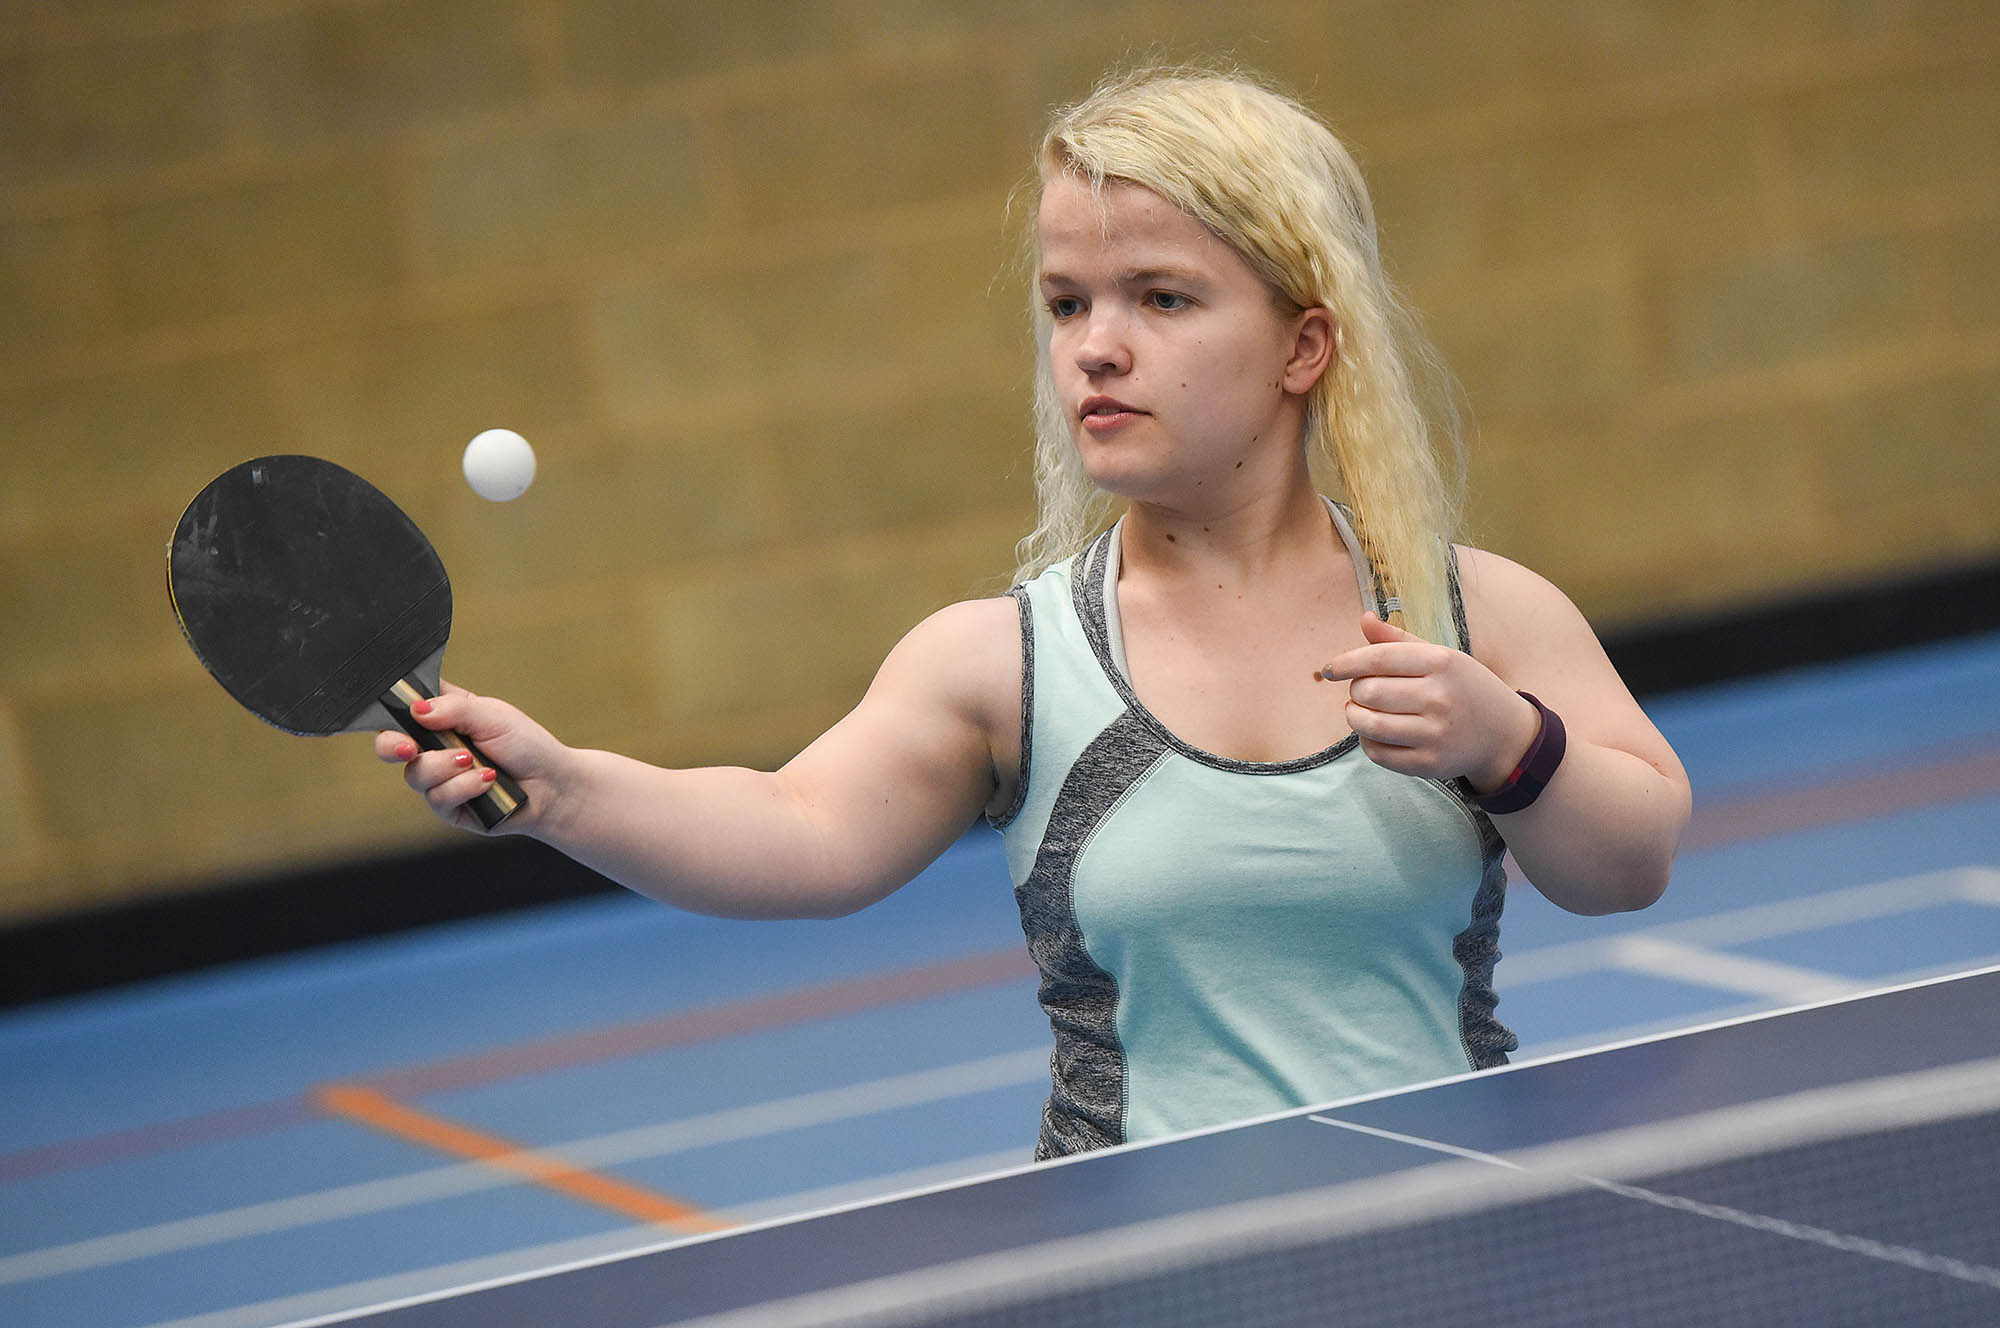 woman with eye on ball playing table tennis